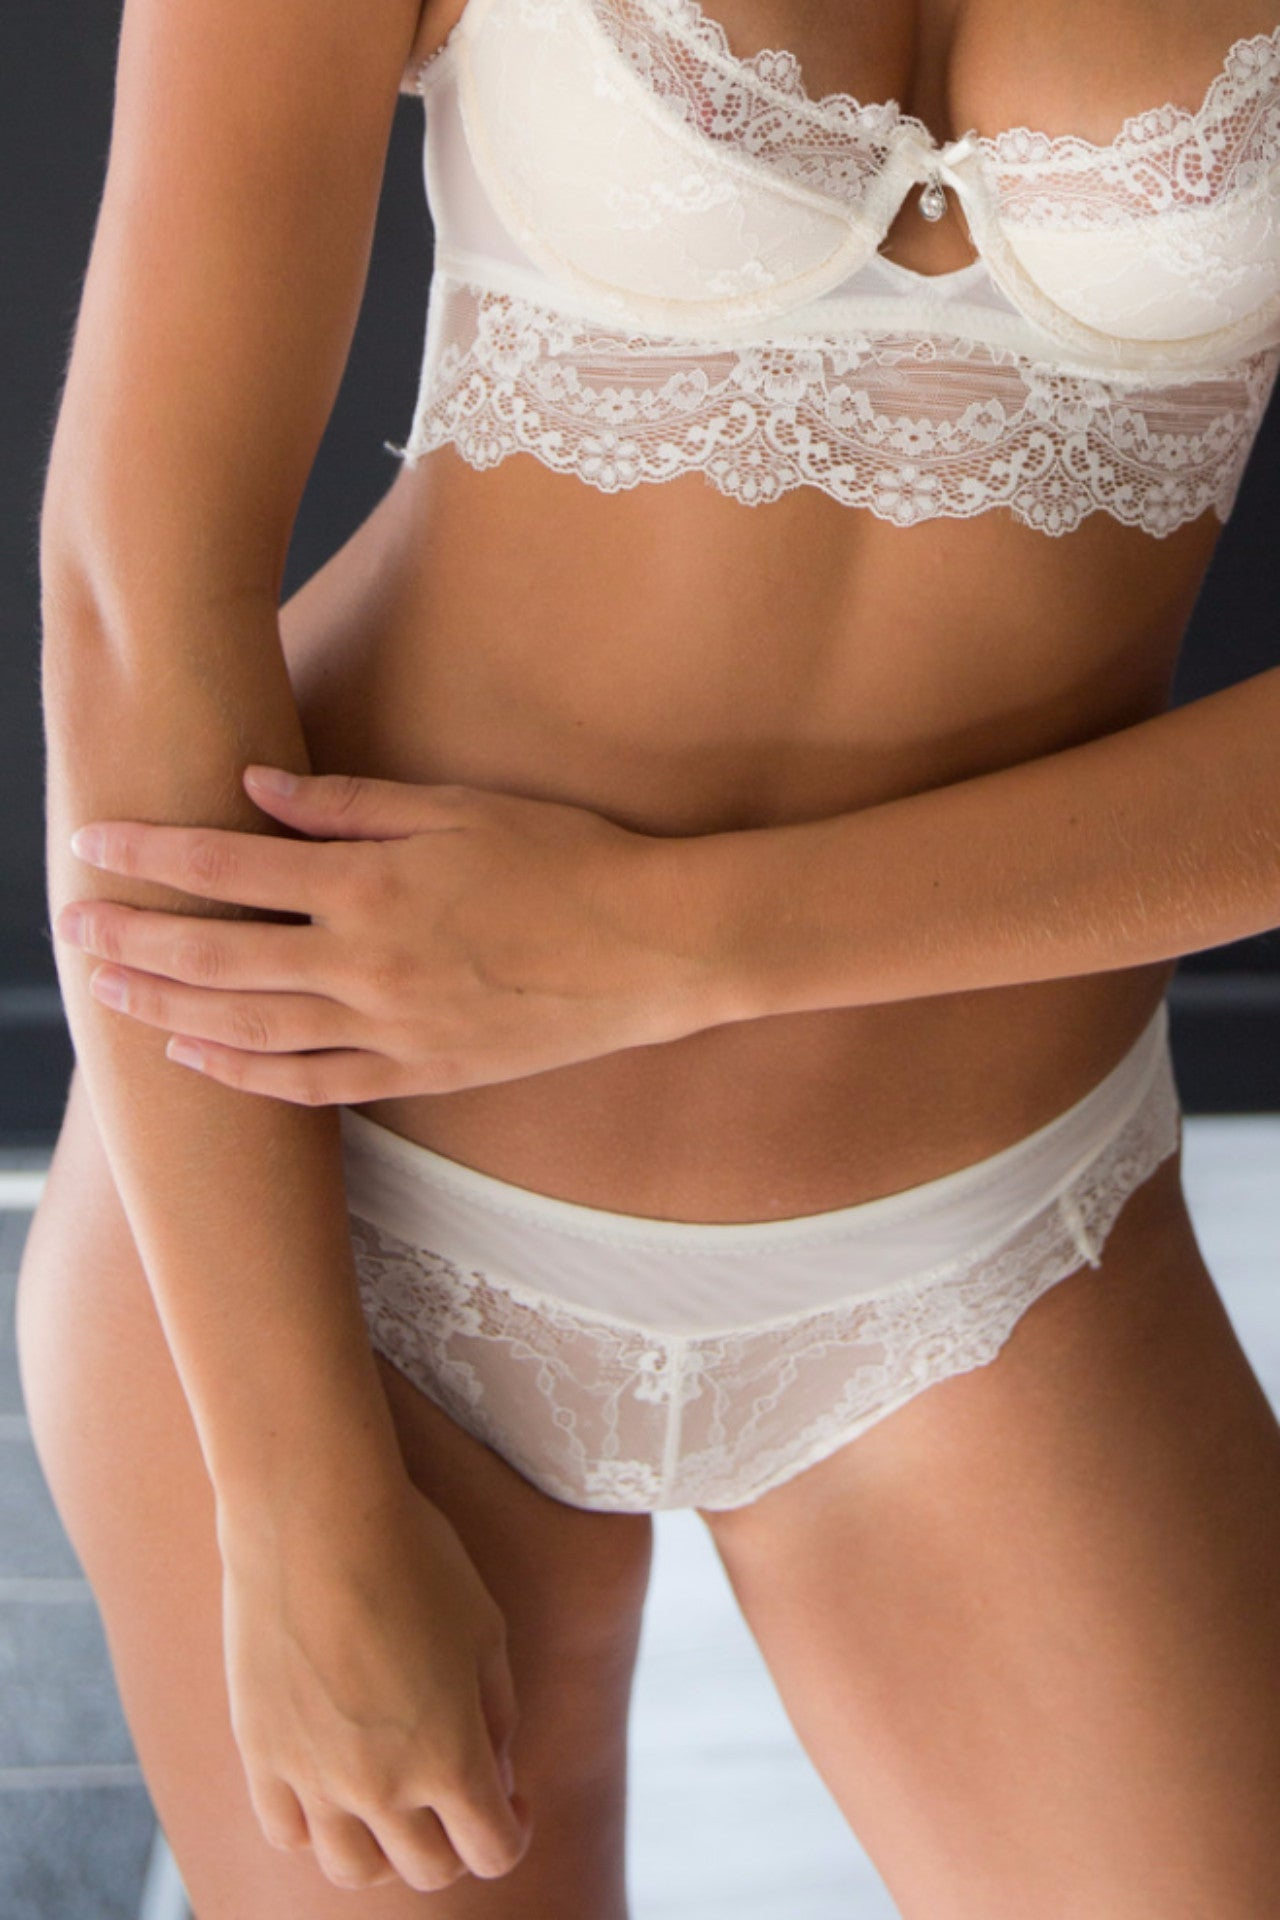 Chandelier Undies - White